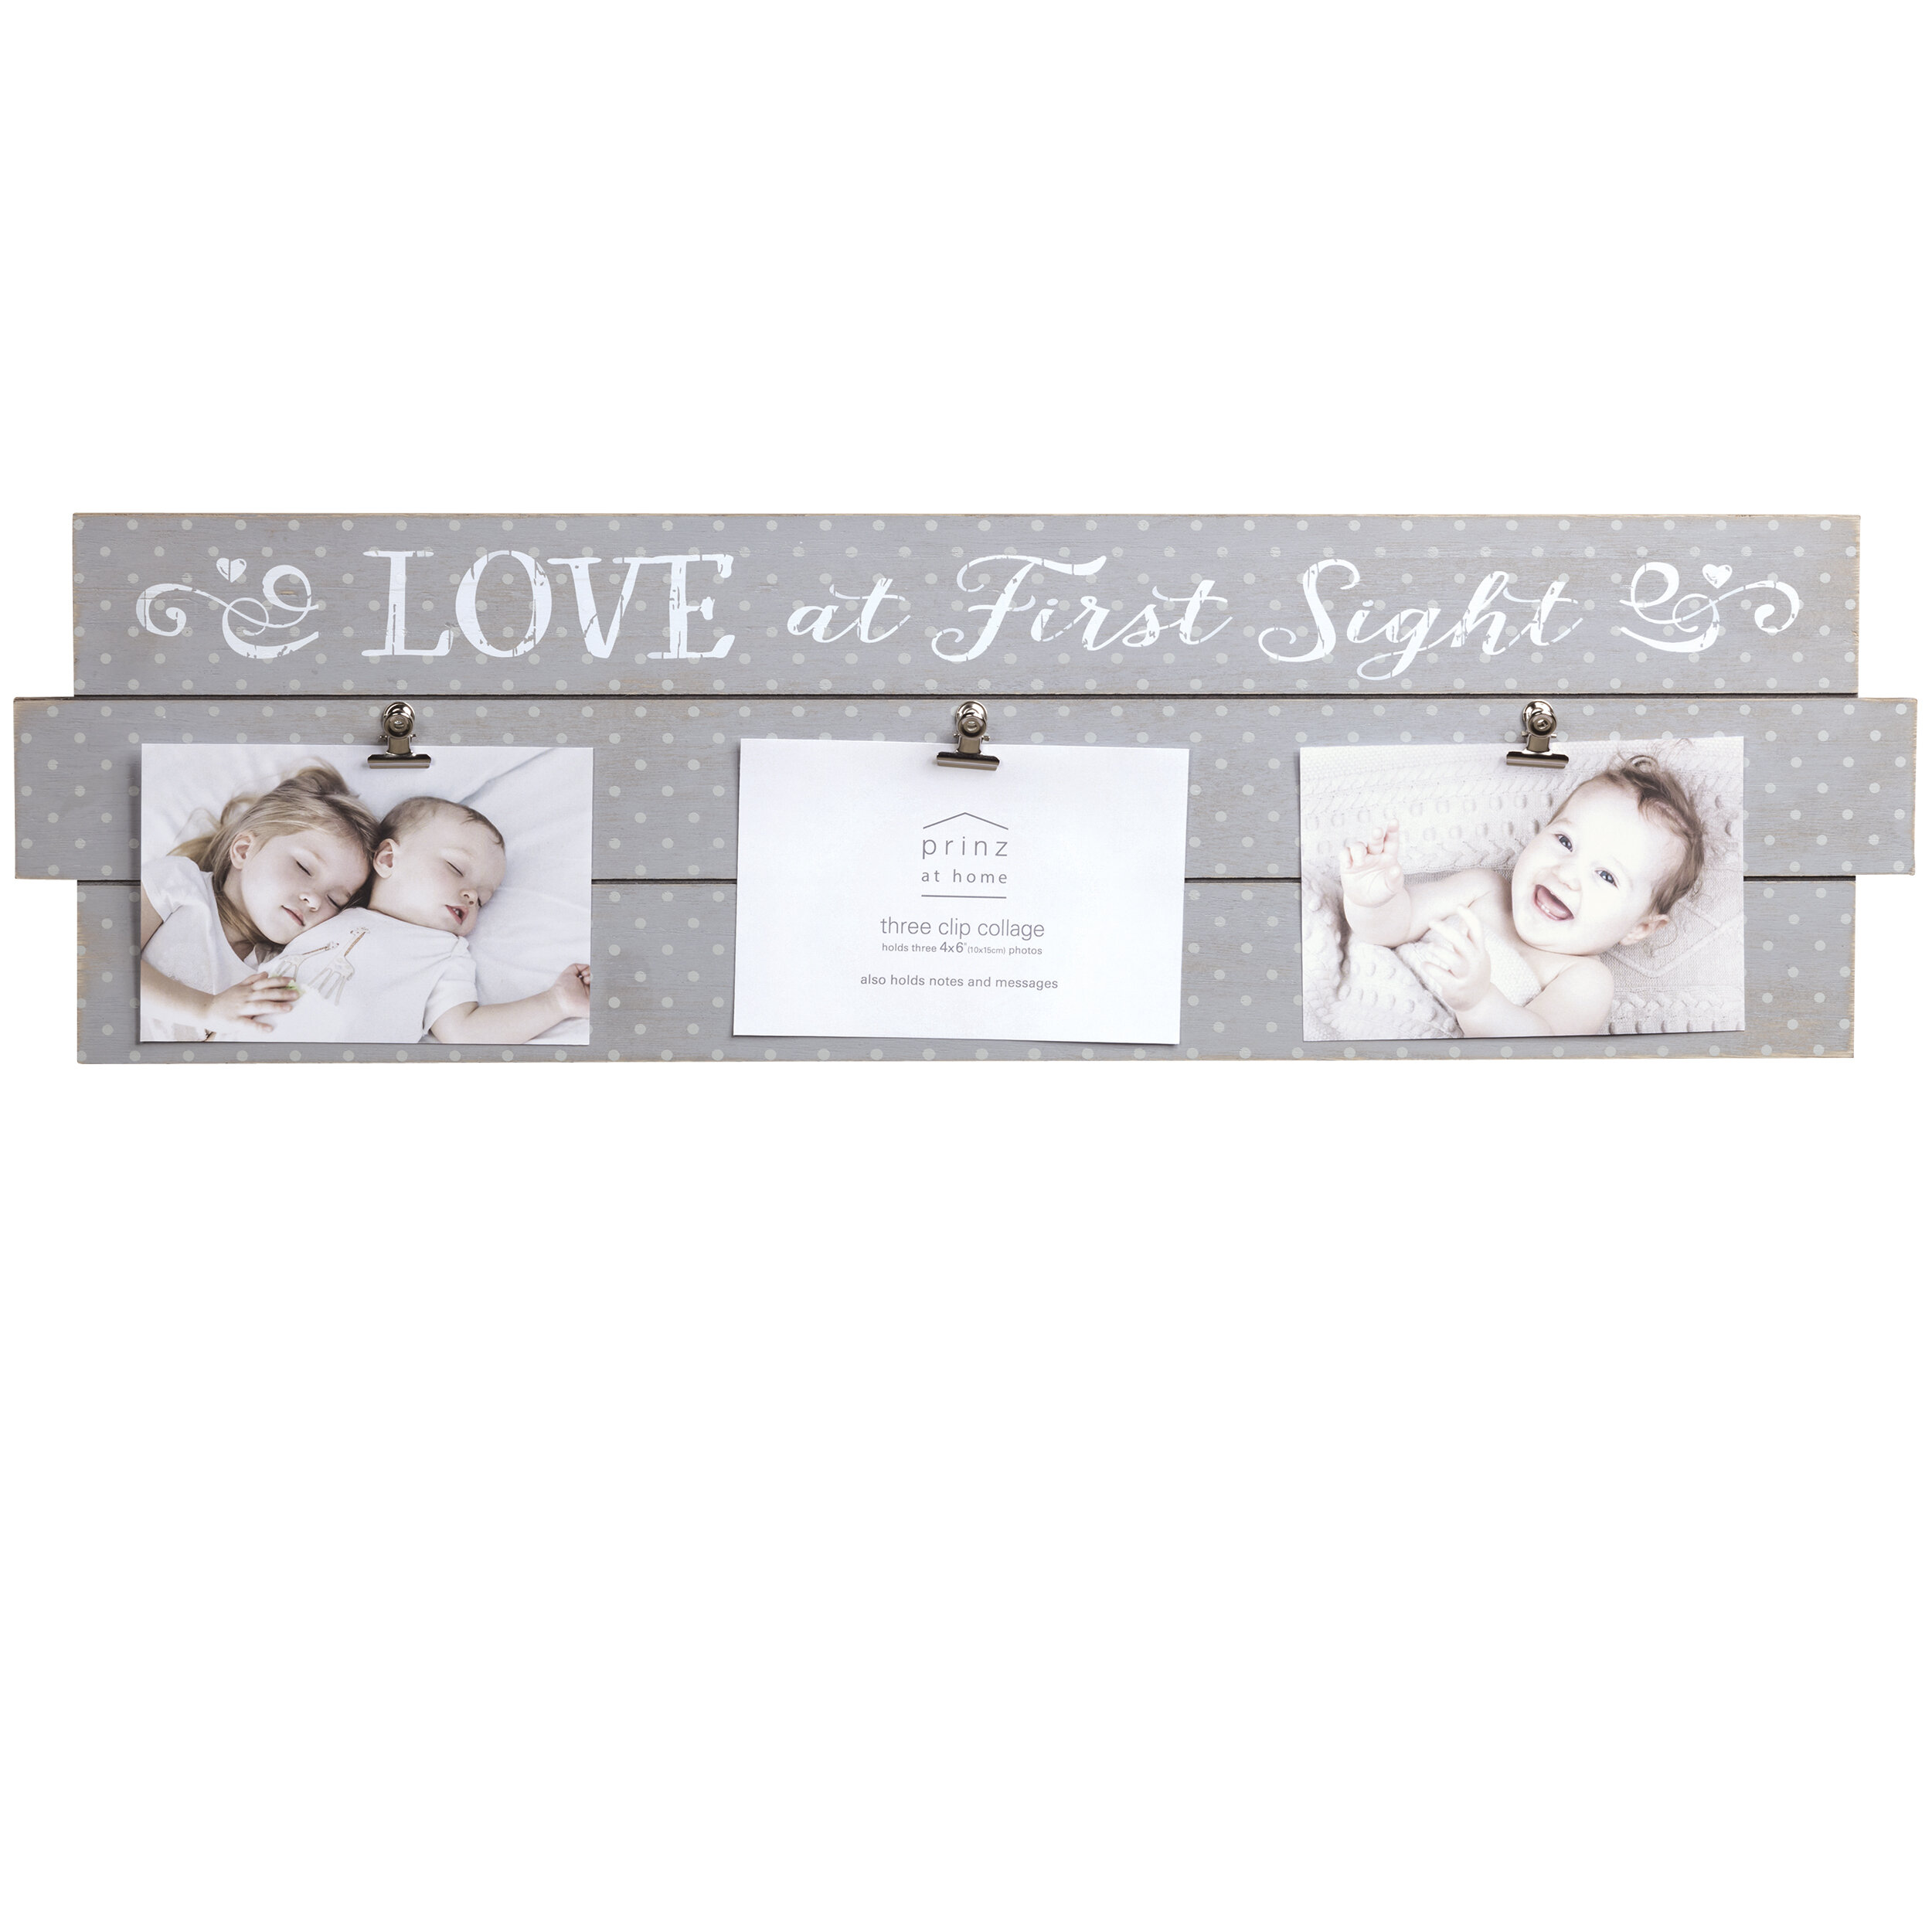 Prinz \'Love at First Sight\' Baby Plank Picture Frame | Wayfair